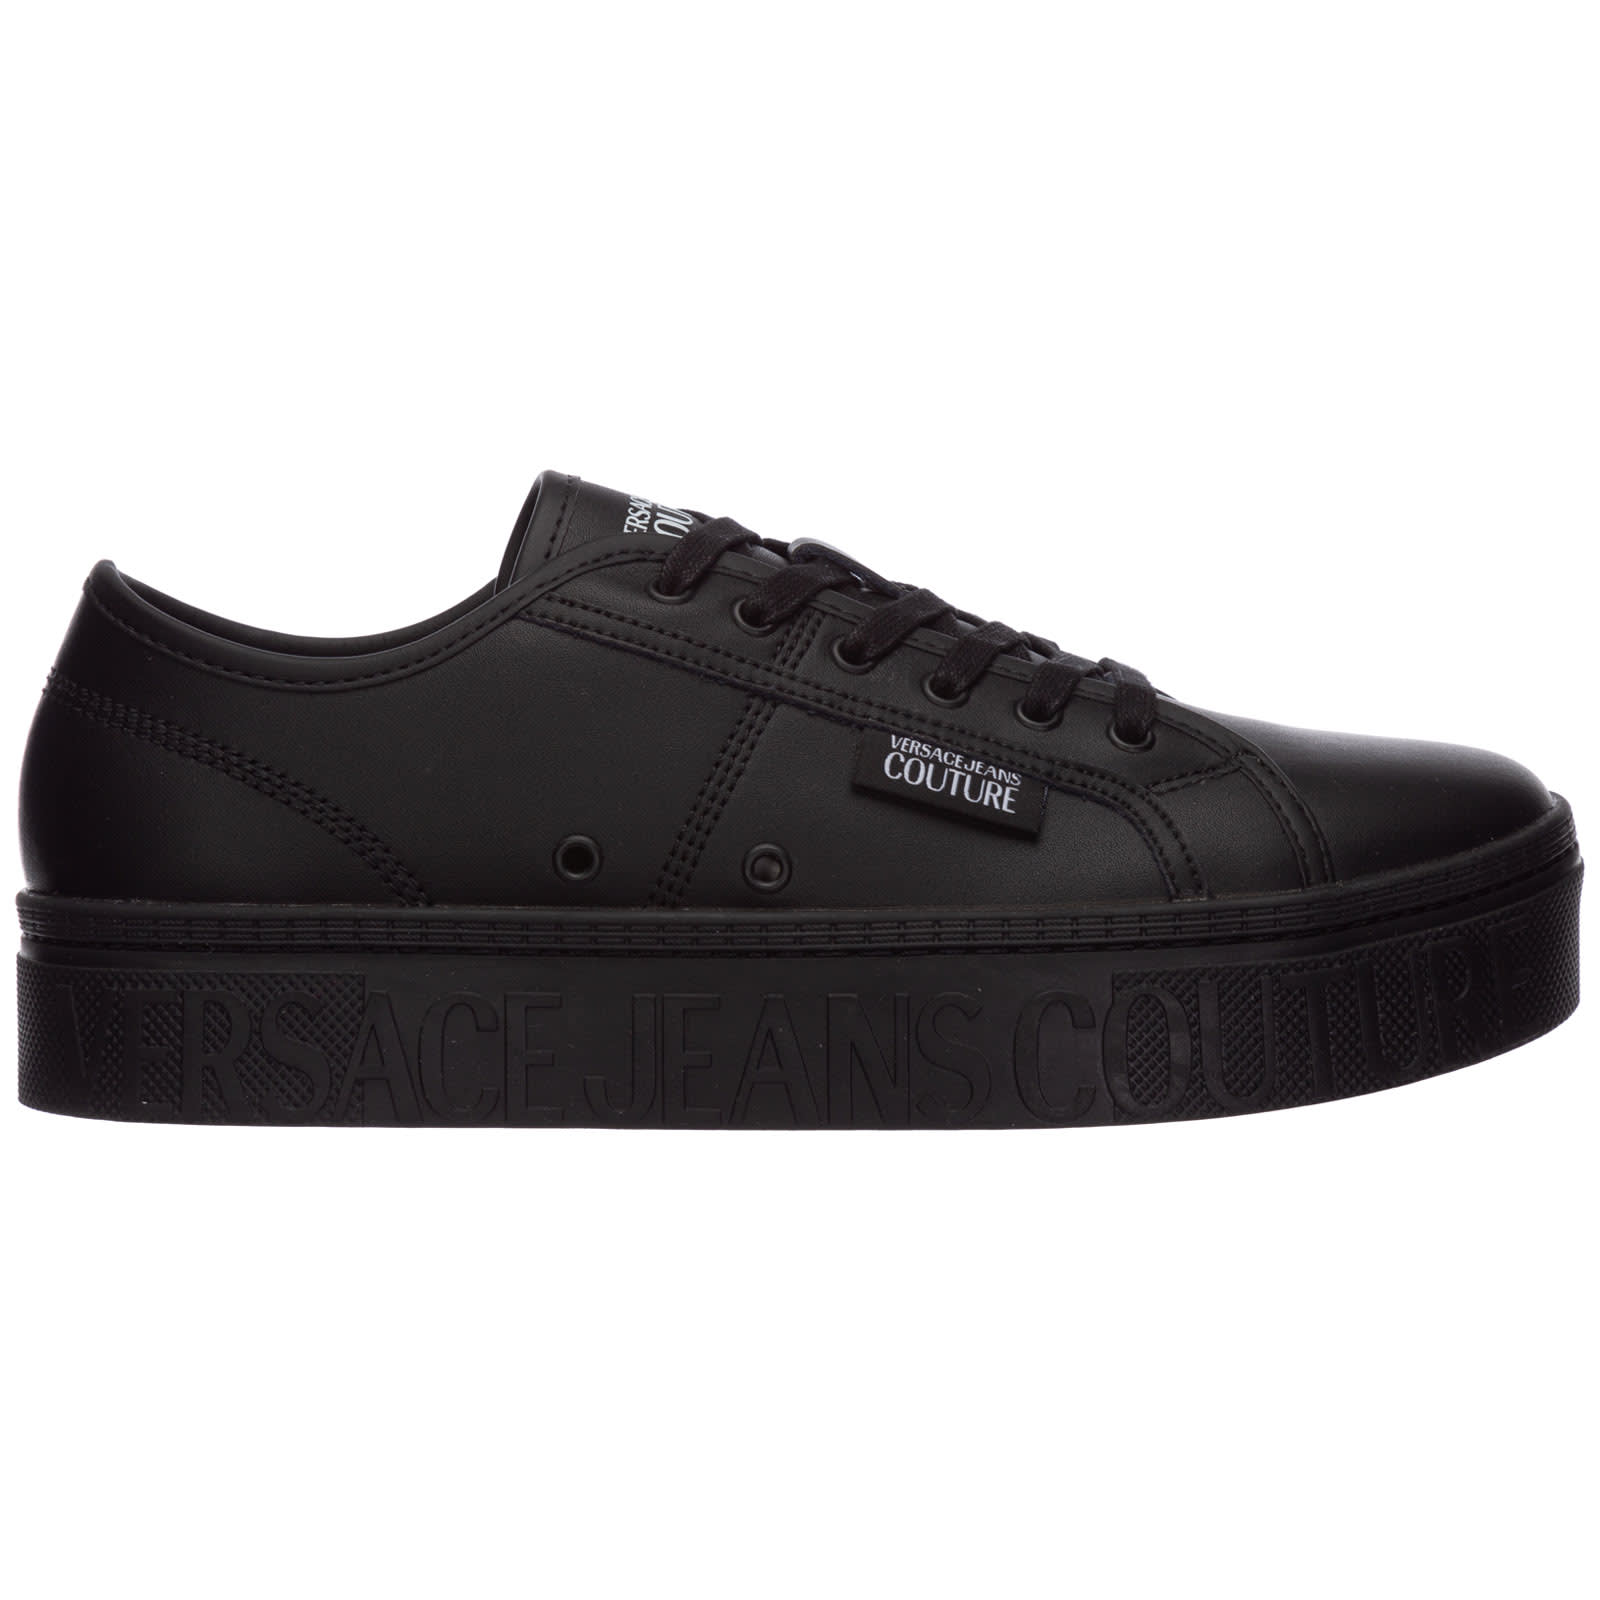 Versace Jeans Couture C-run 3000 Sneakers